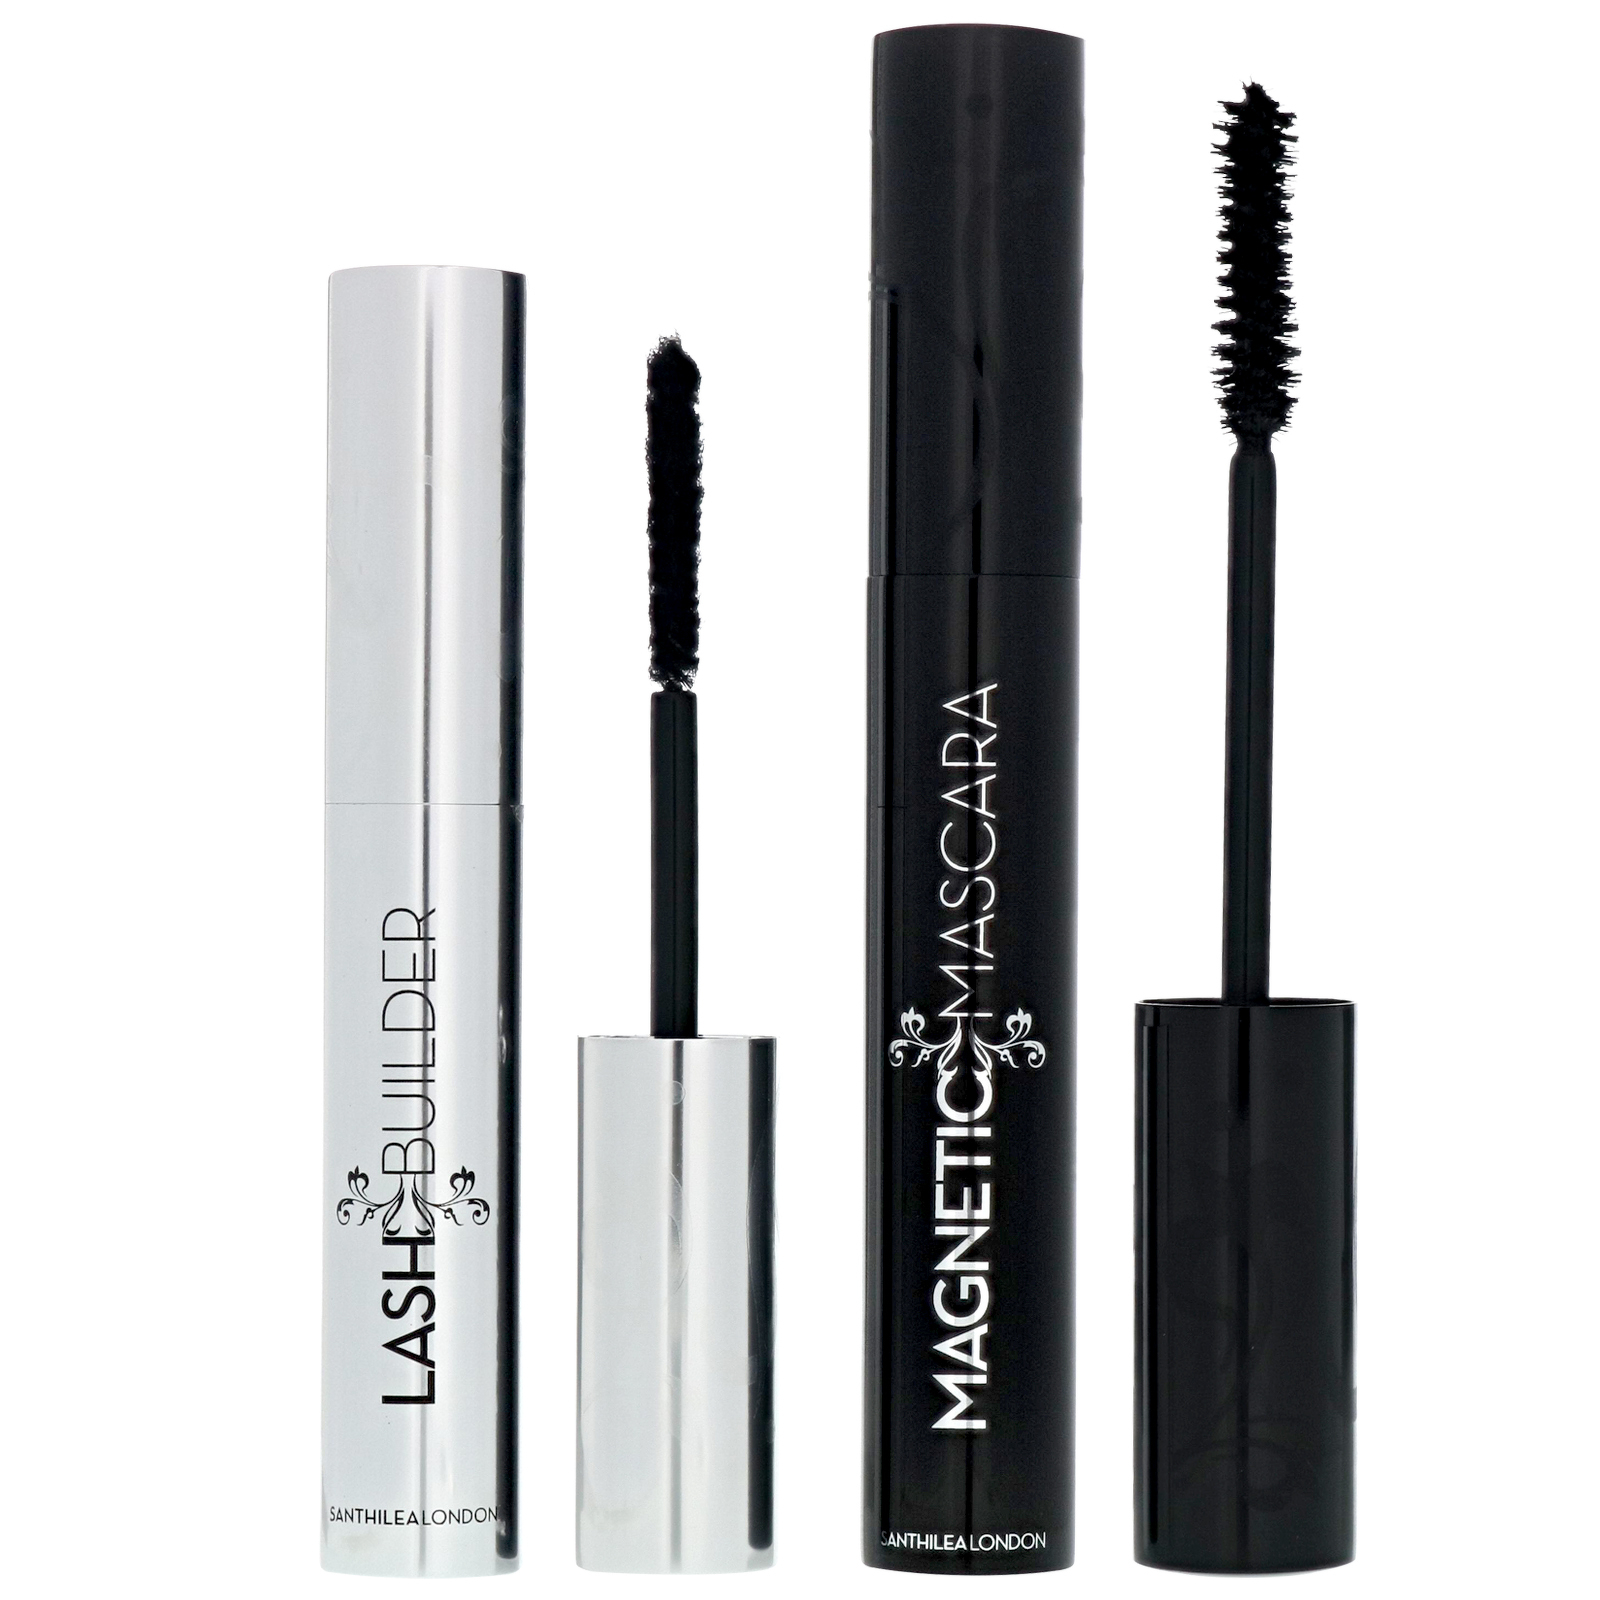 Santhilea Magnetic Lash Mascara 1-2-1 Lash Extension System Mascara Set Black Velvet